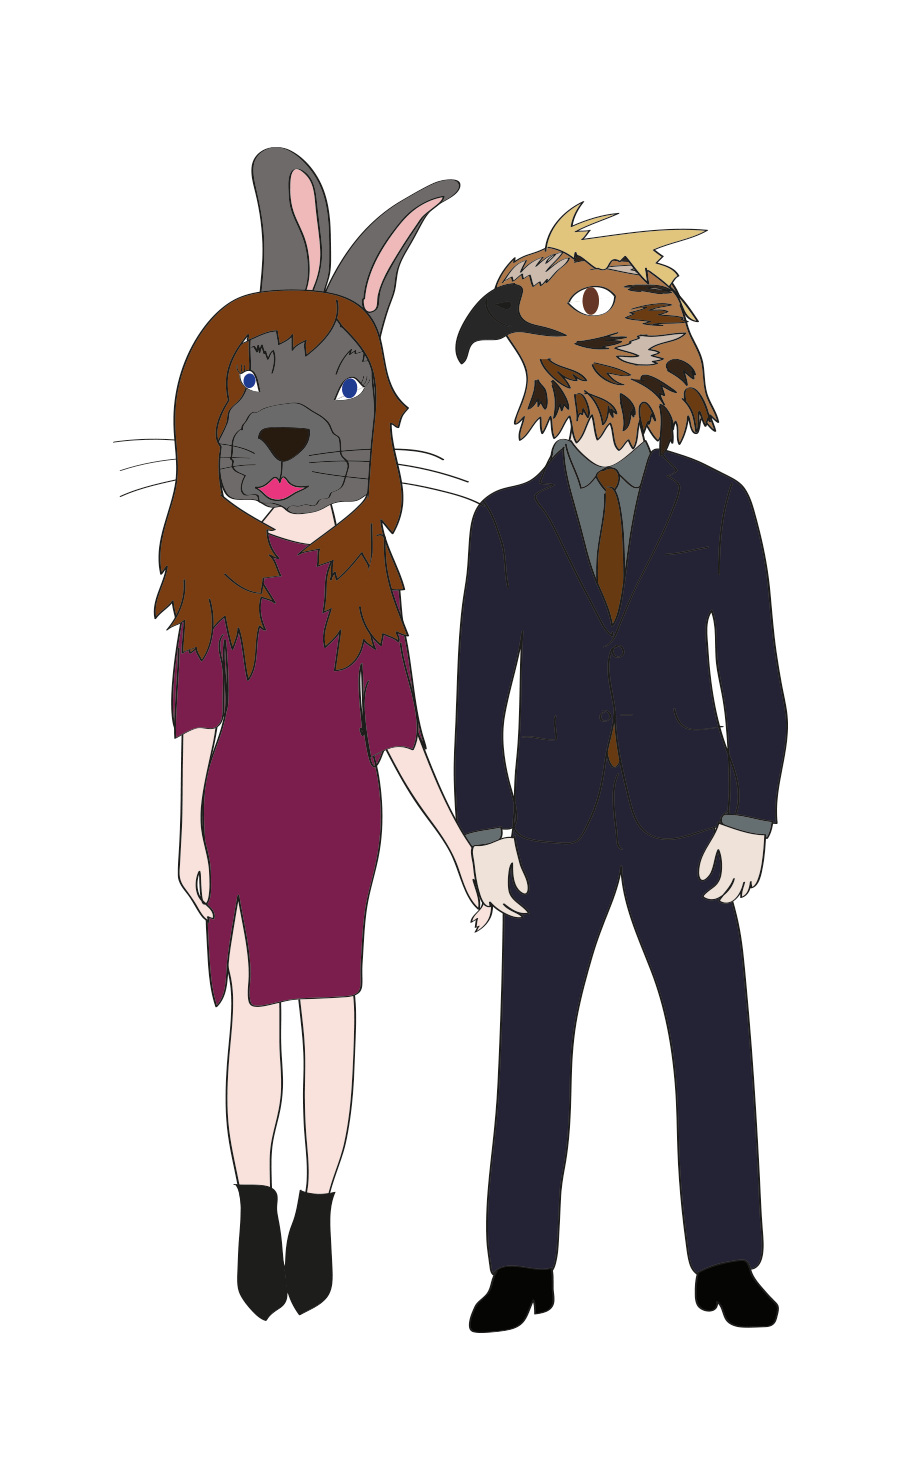 Interspecies couple: Hot Bunny + Sexy Hawk